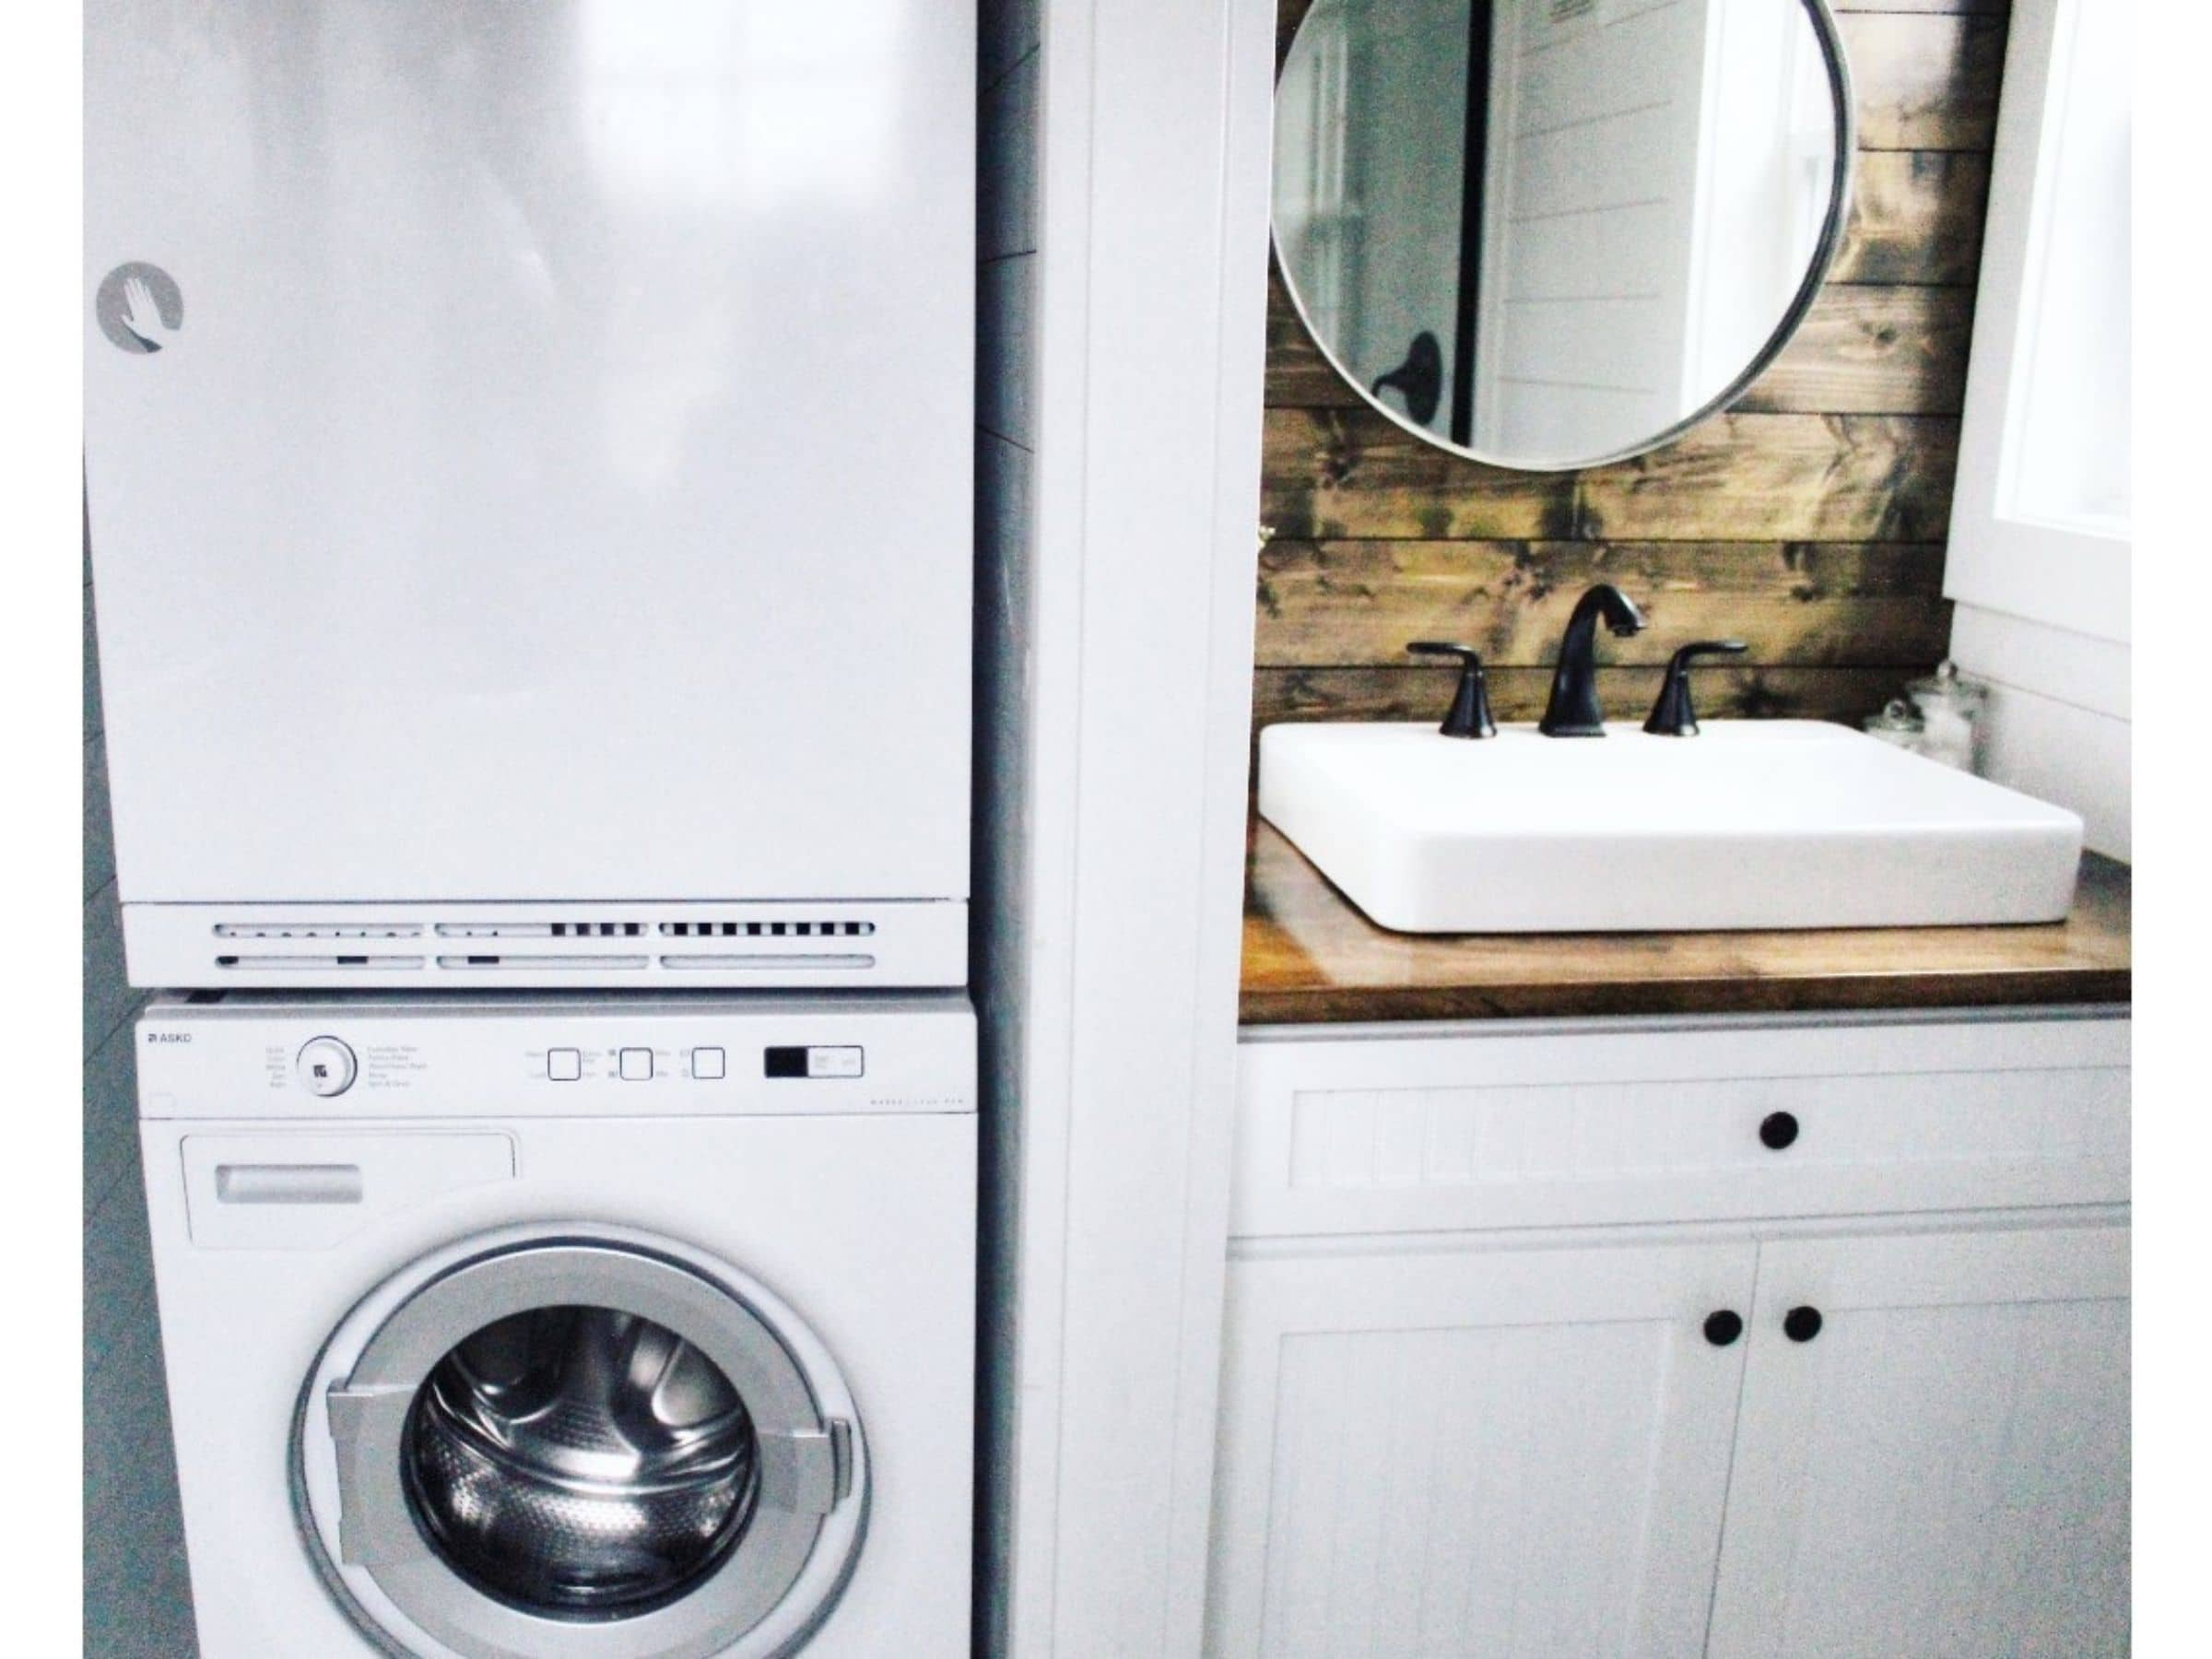 Stacking washer and dryer next to bathroom sink with wood backsplash